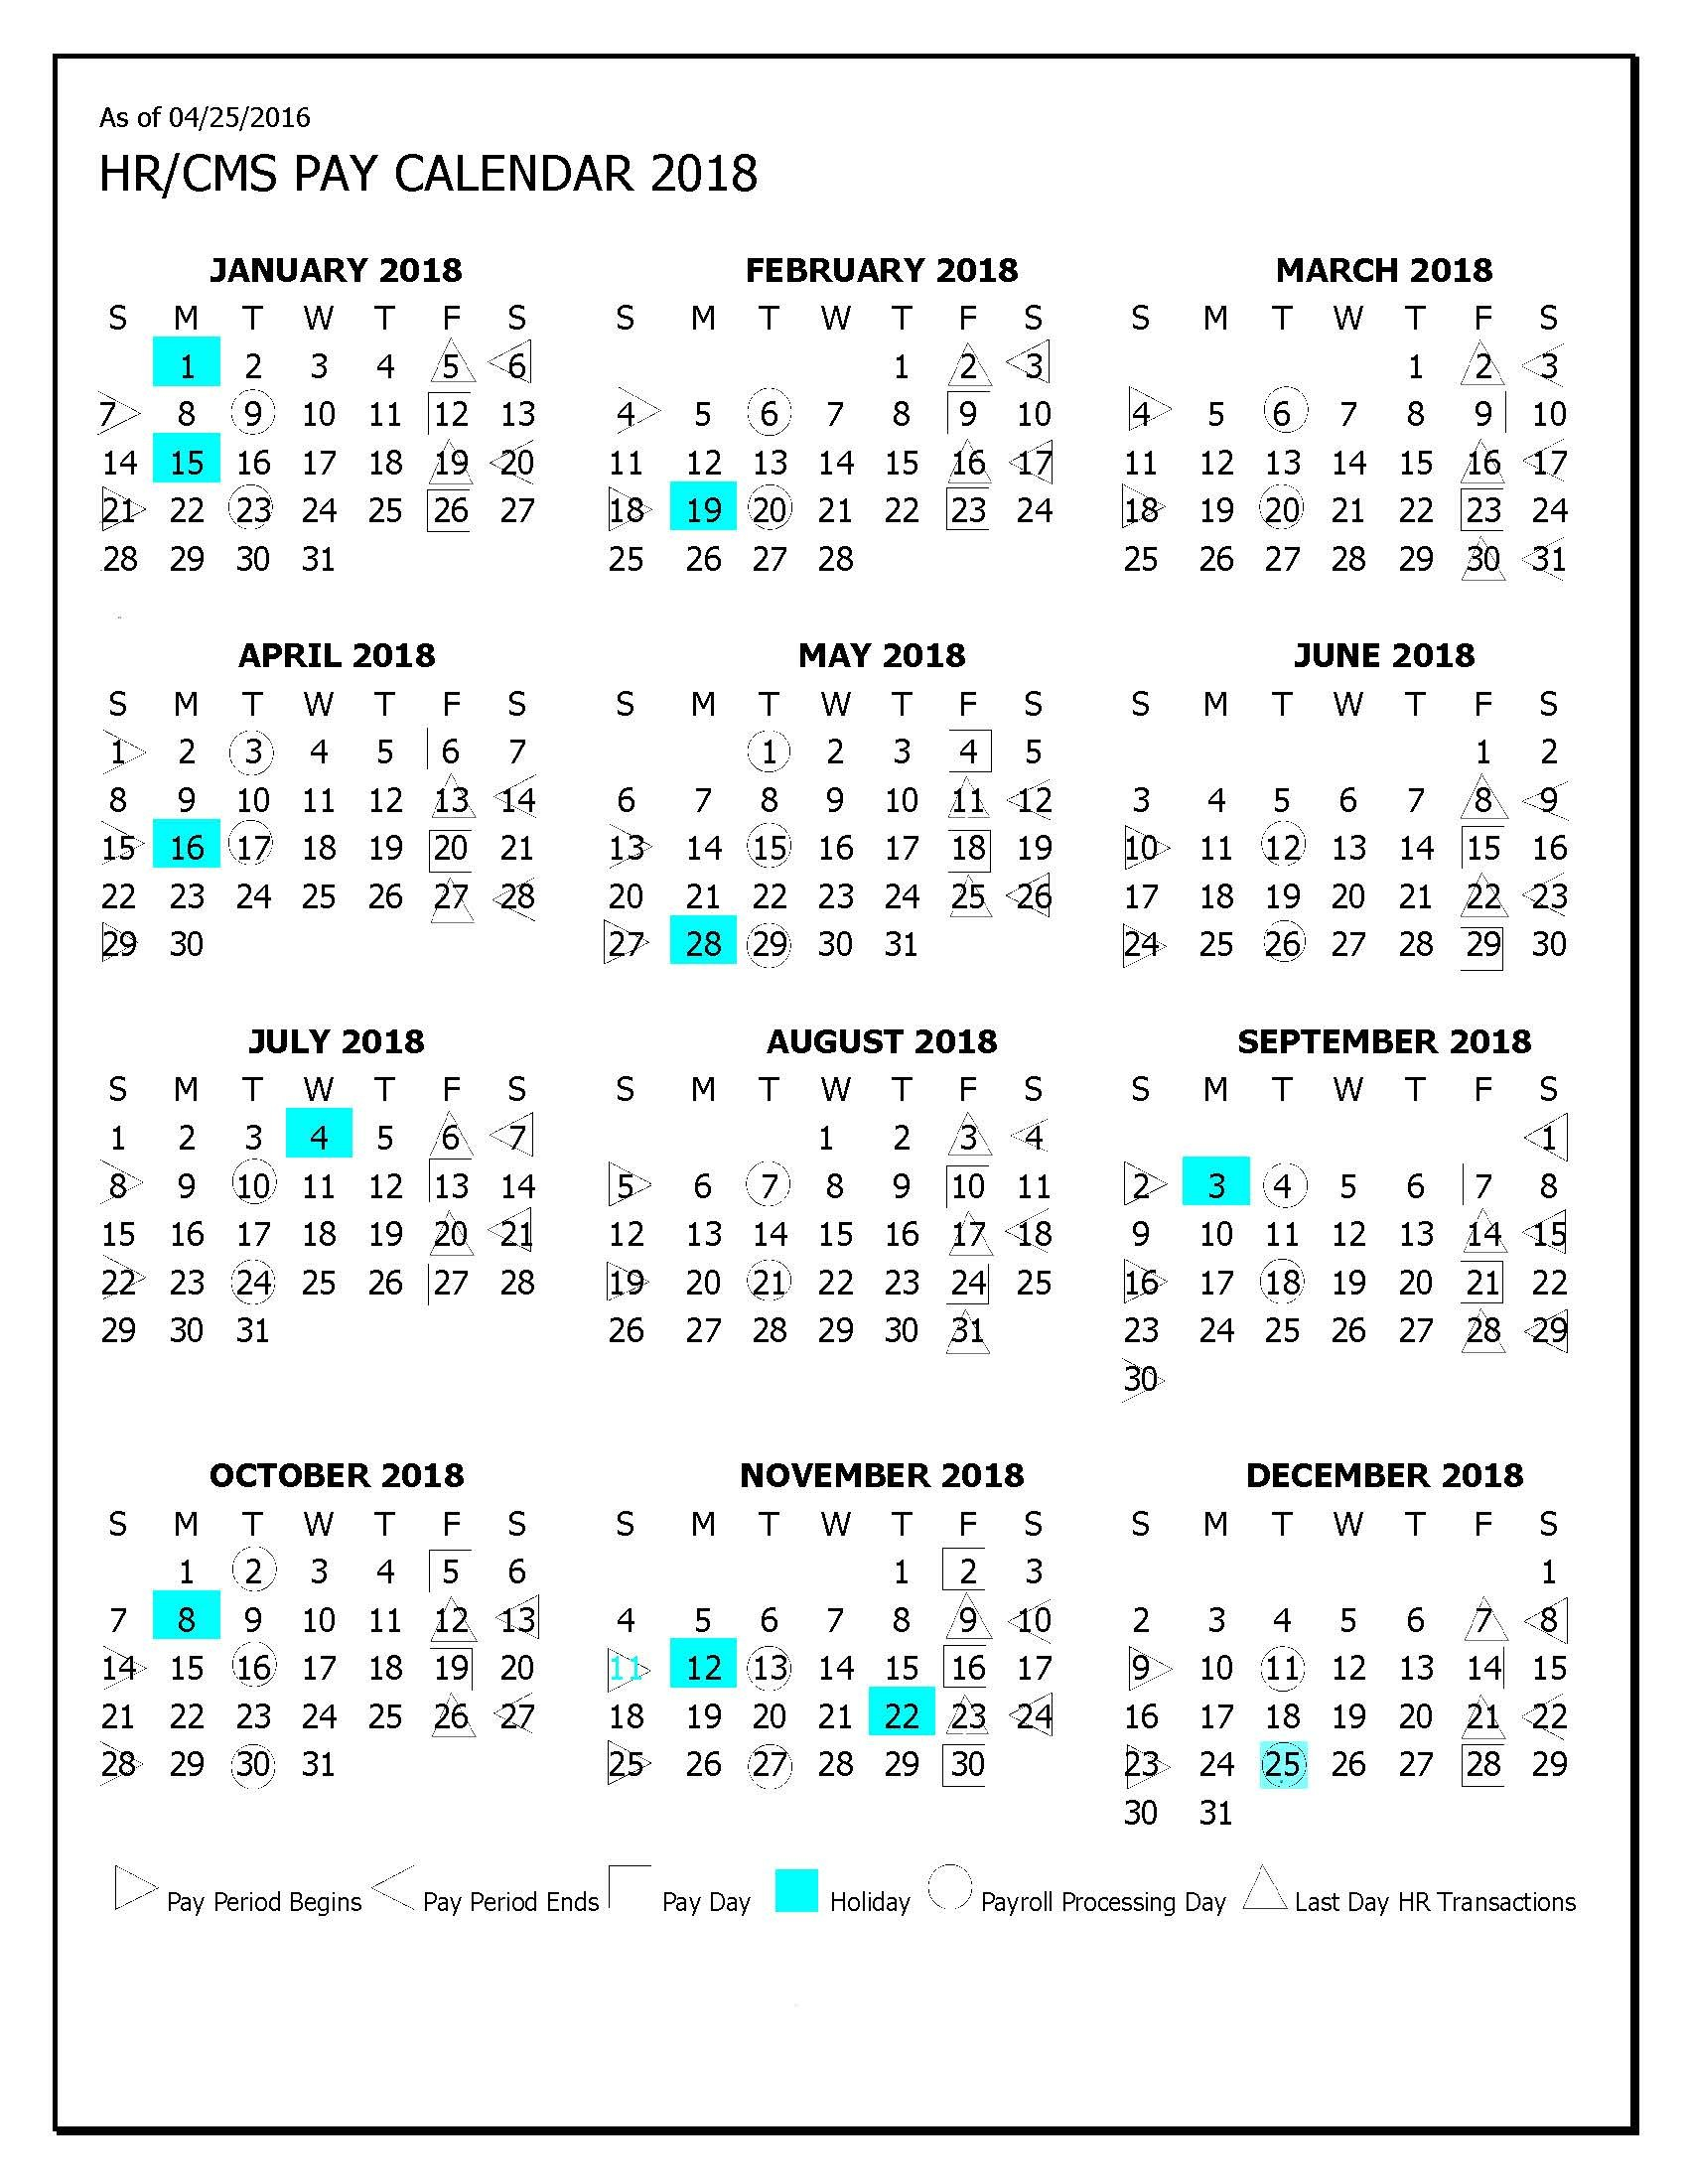 Hhs Payroll Calendar 2017 To Download Or Print intended for Payroll Calendar 2020 Hhs